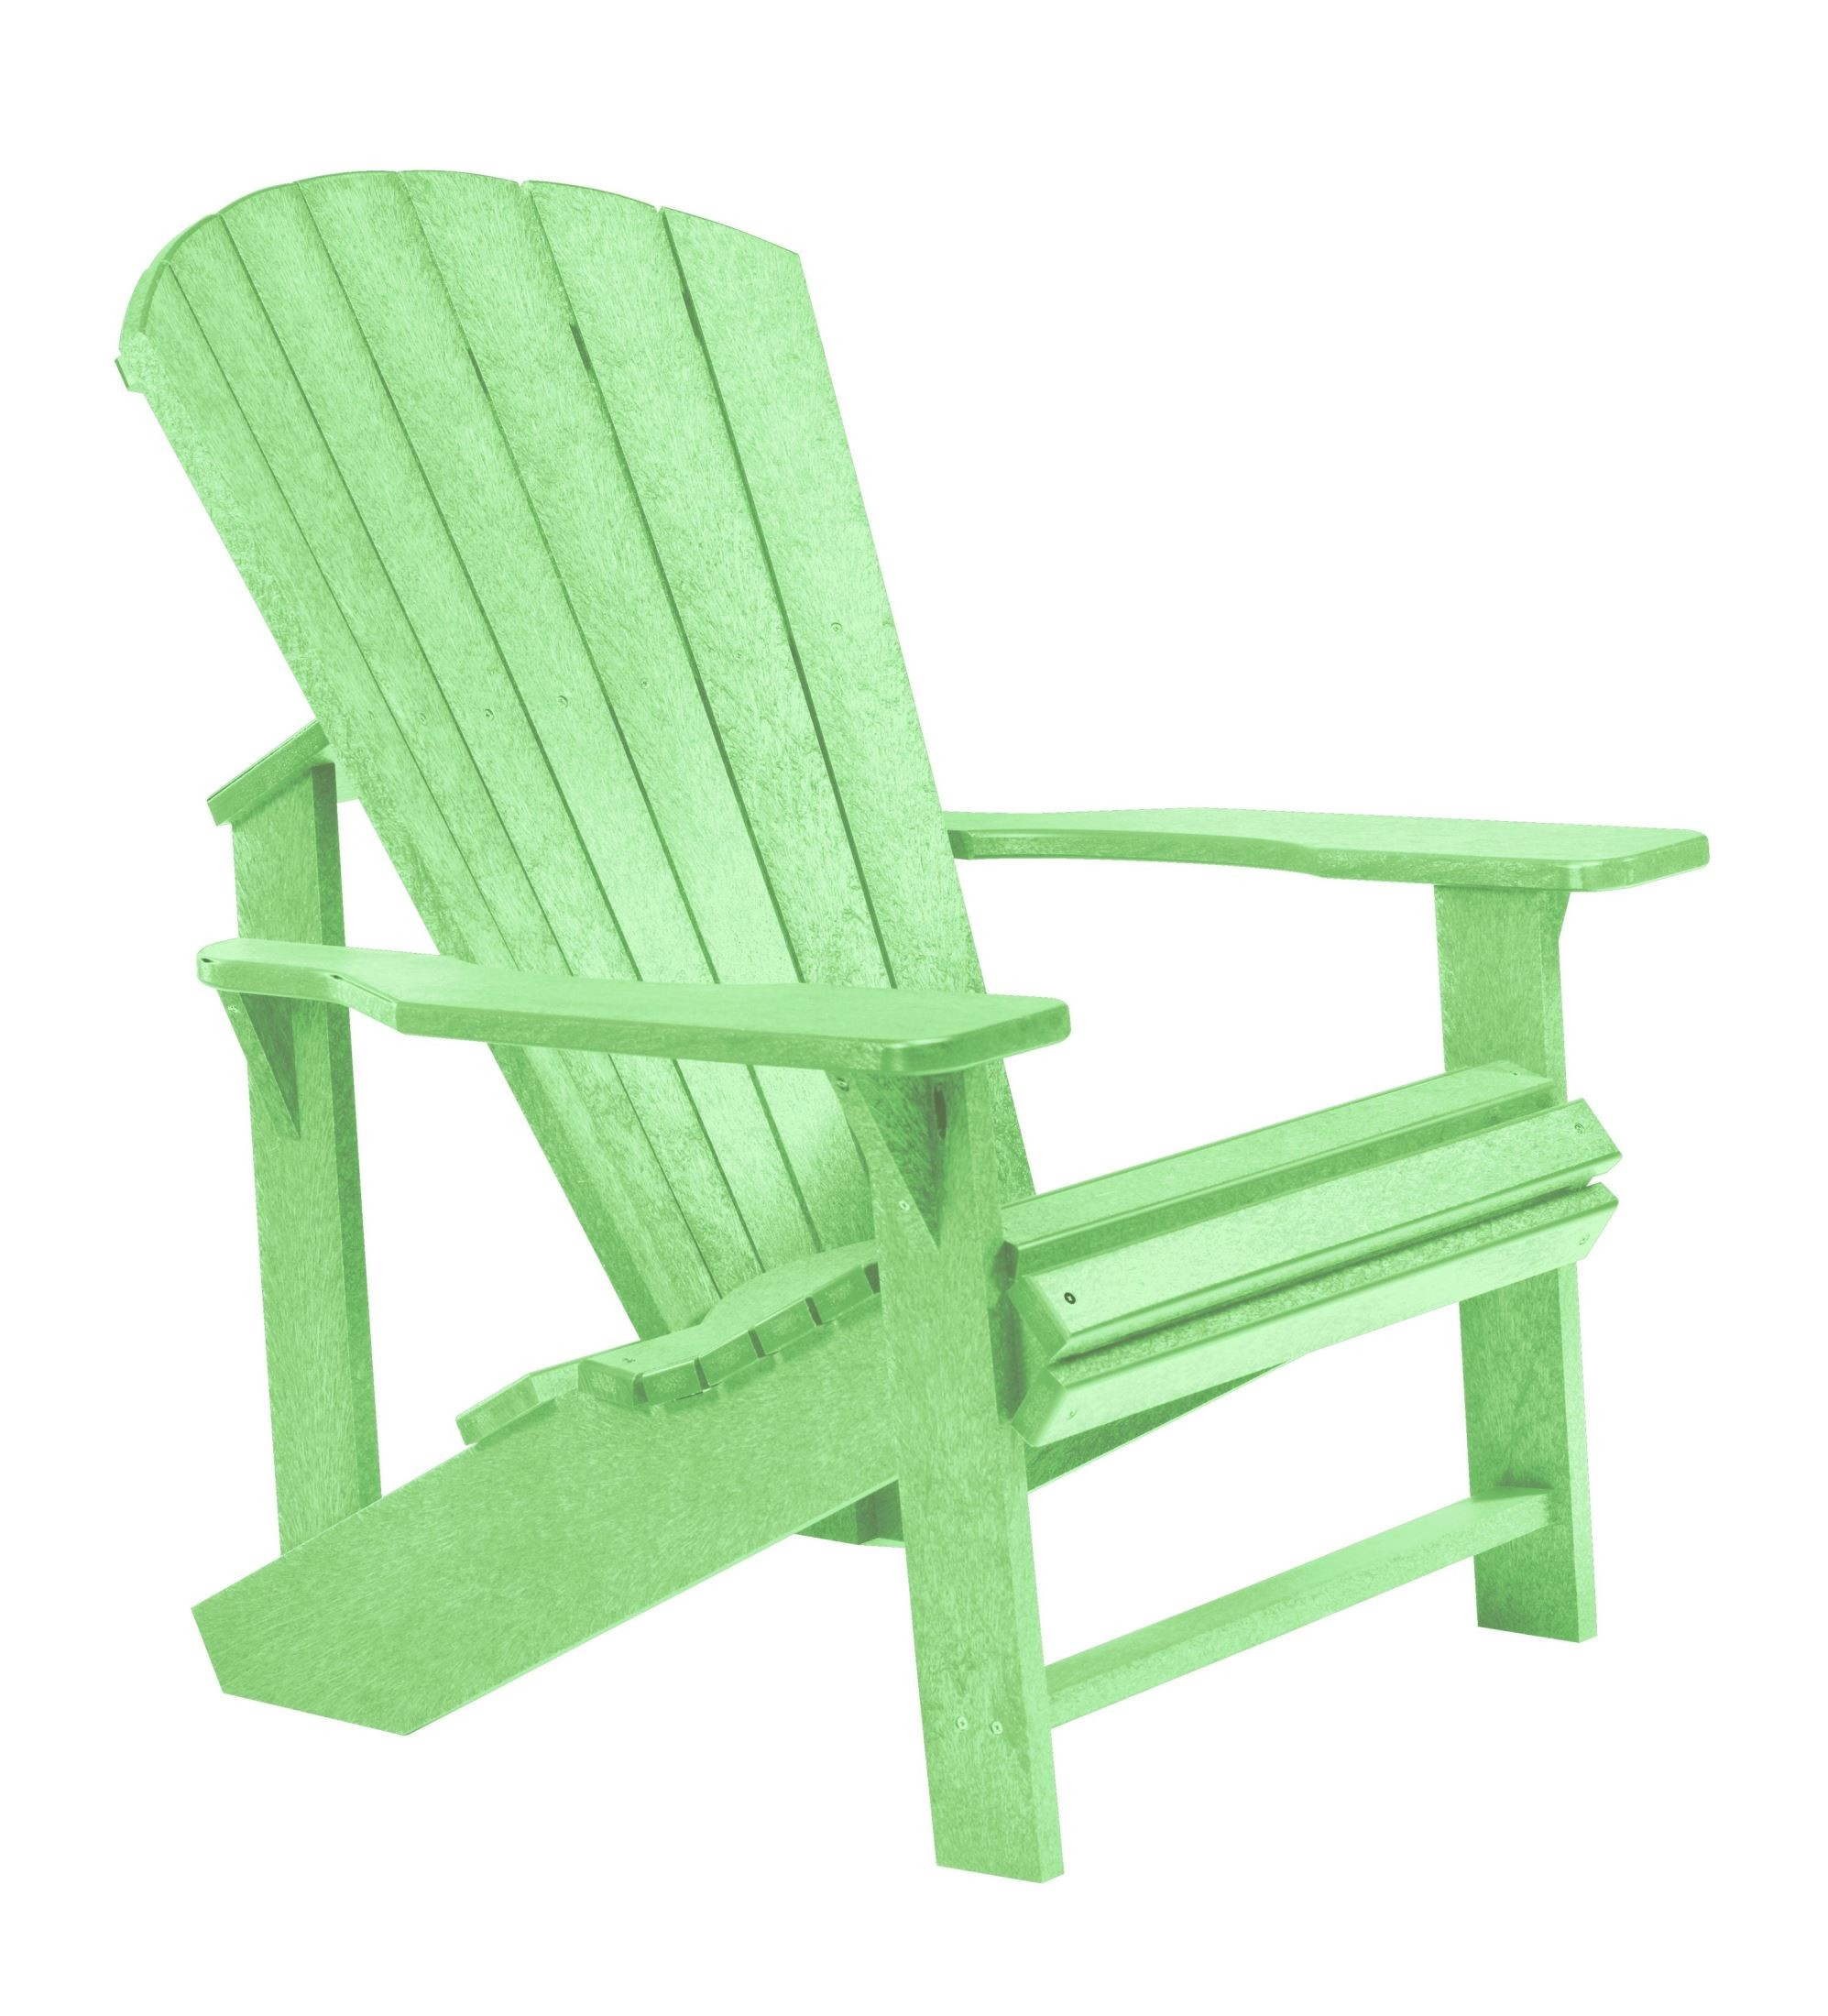 Lime Green Chair Generations Lime Green Adirondack Chair From Cr Plastic